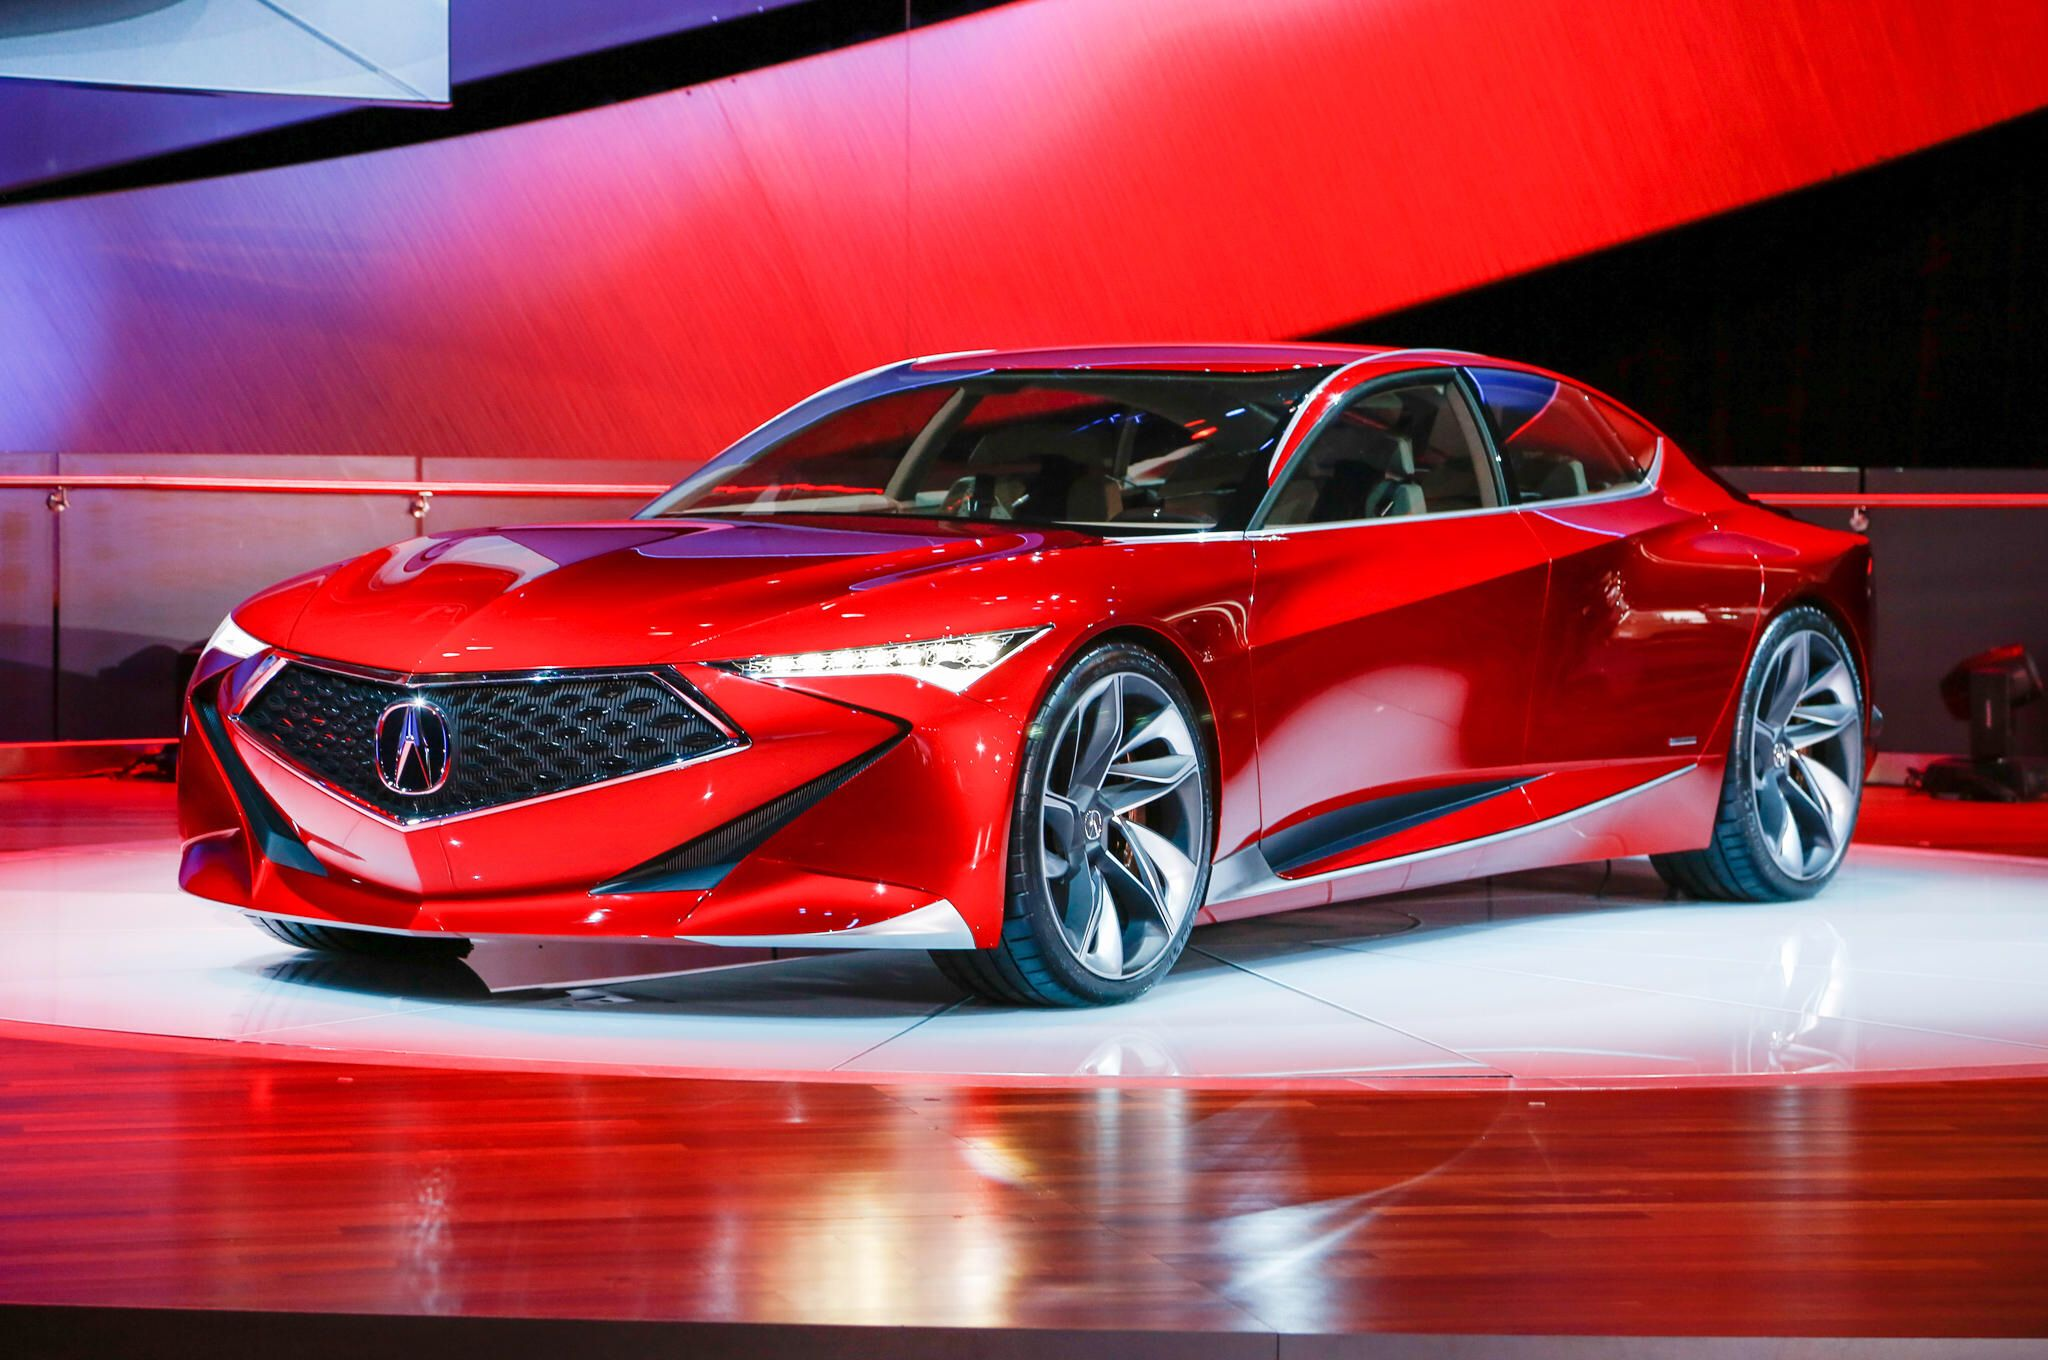 New Acura Compact Crossover First To Get Precision Influenced Styling Concept Cars Acura Acura Tsx